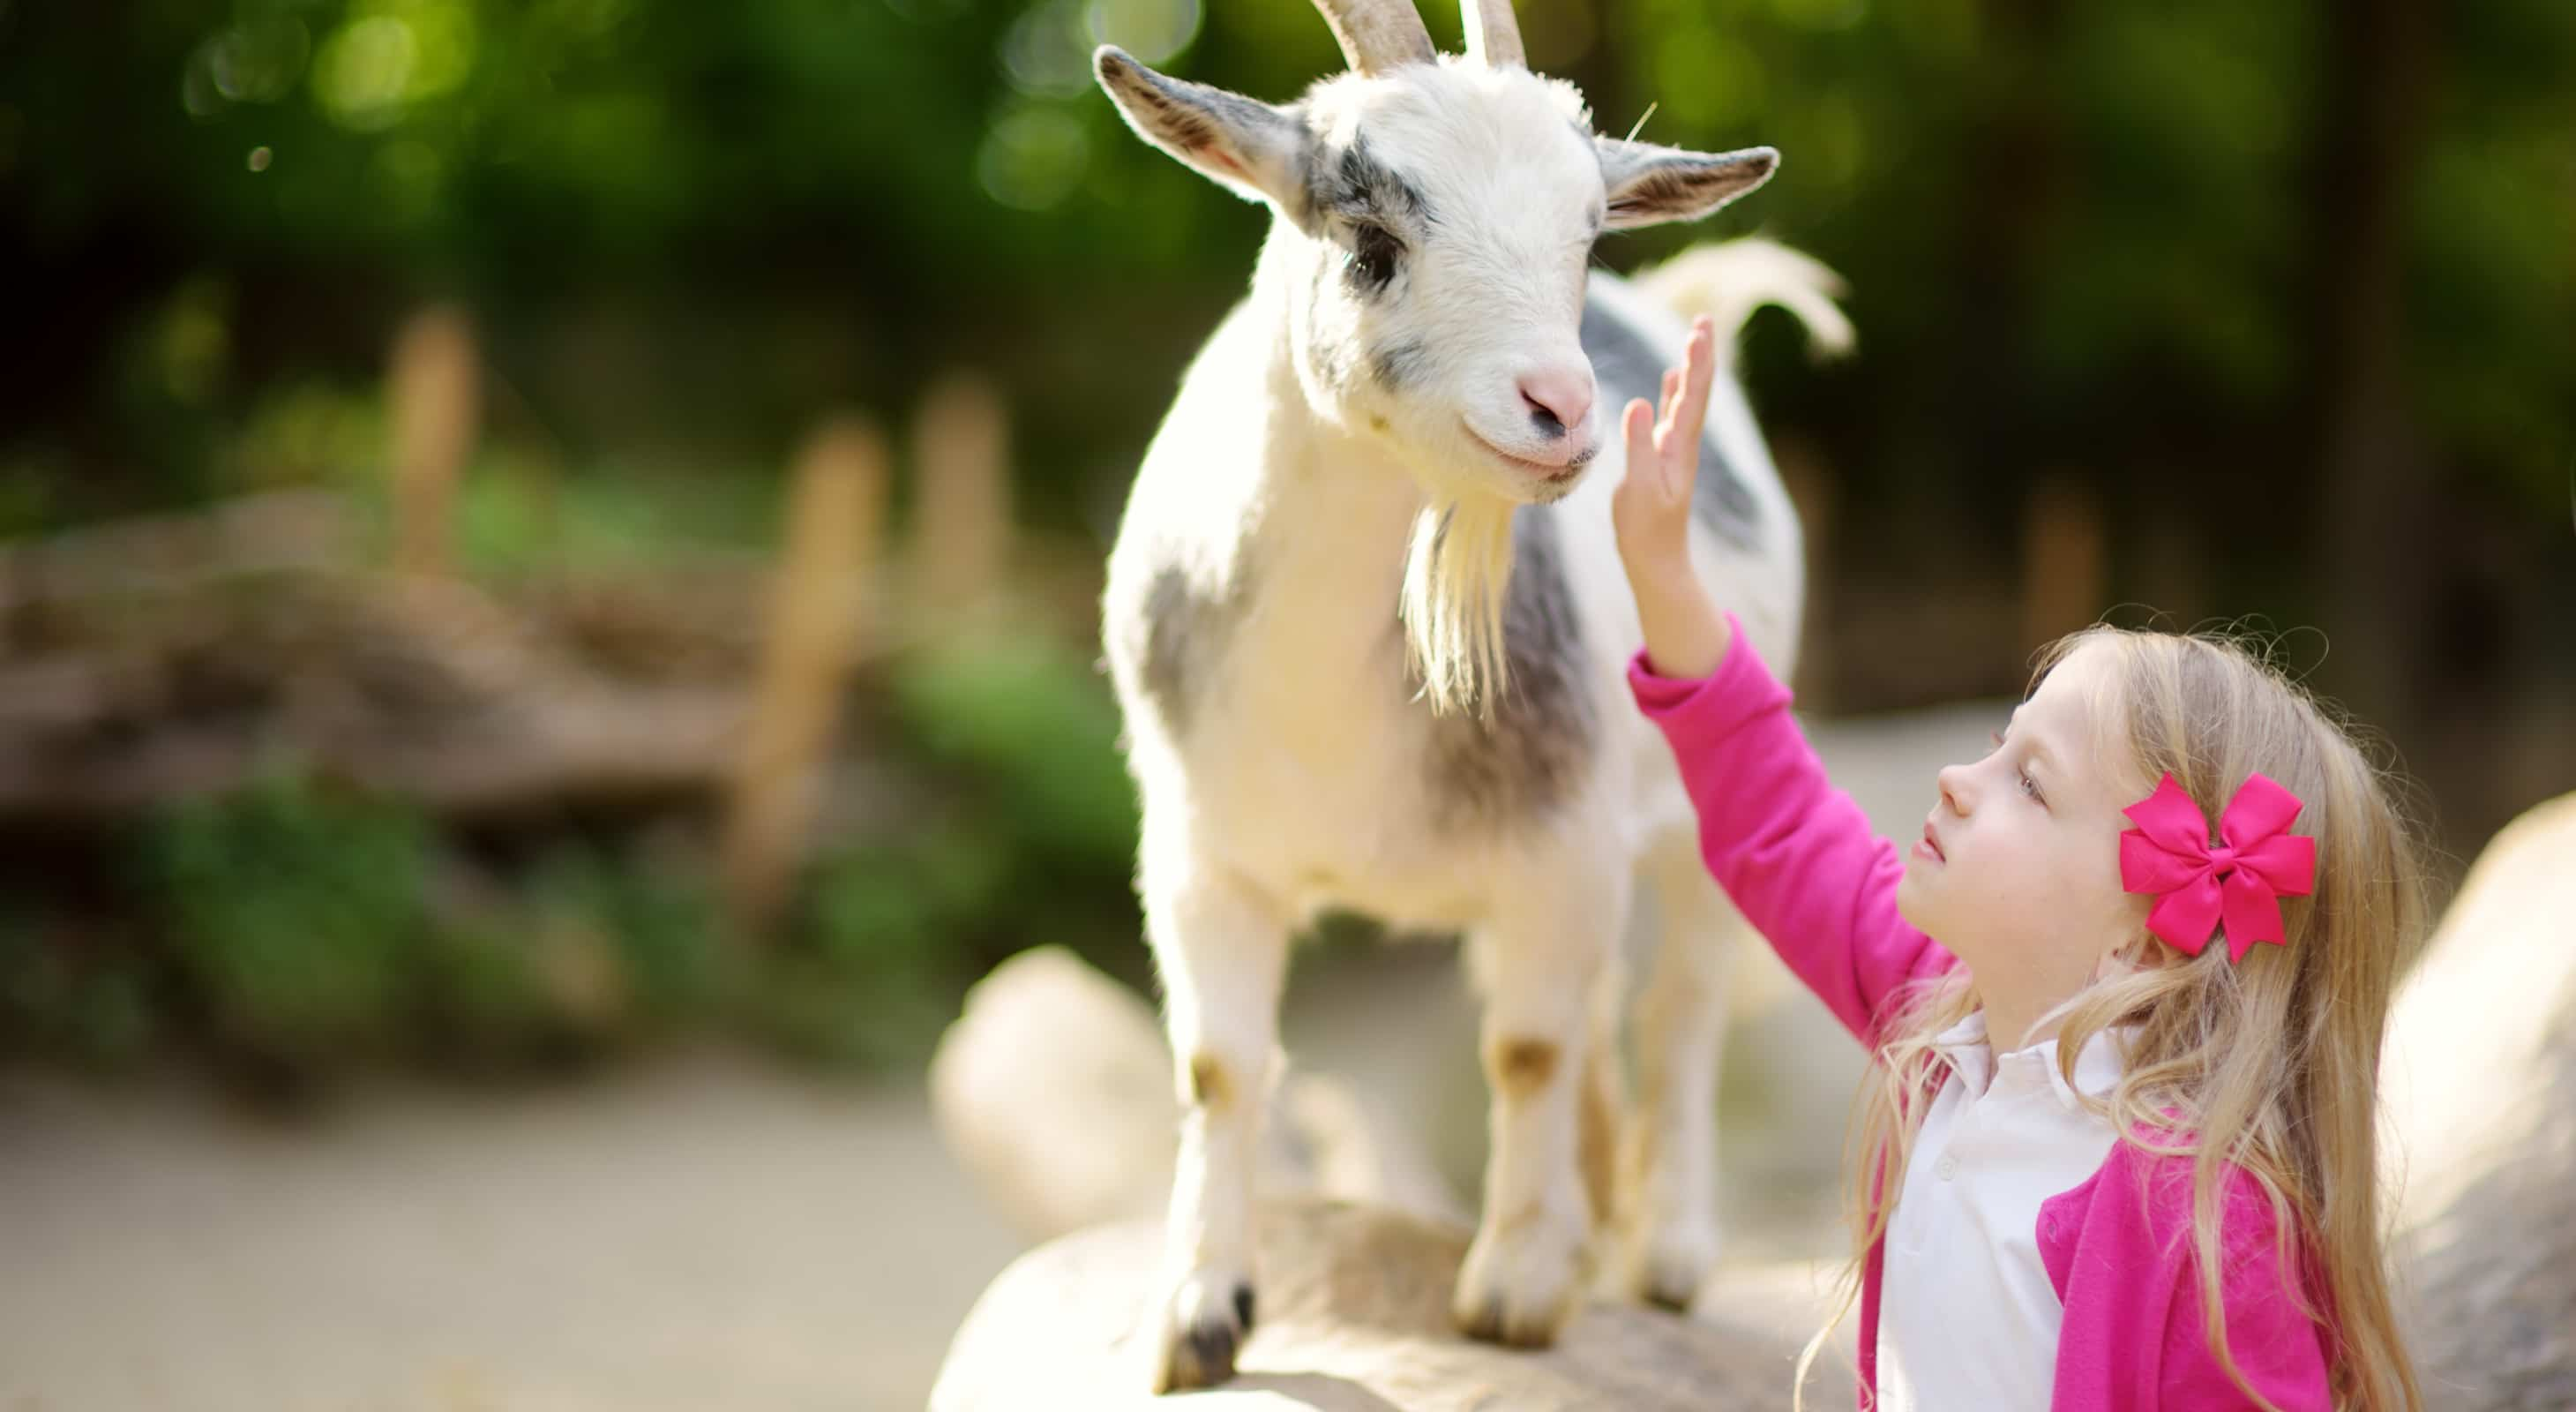 A little girl petting a small goat